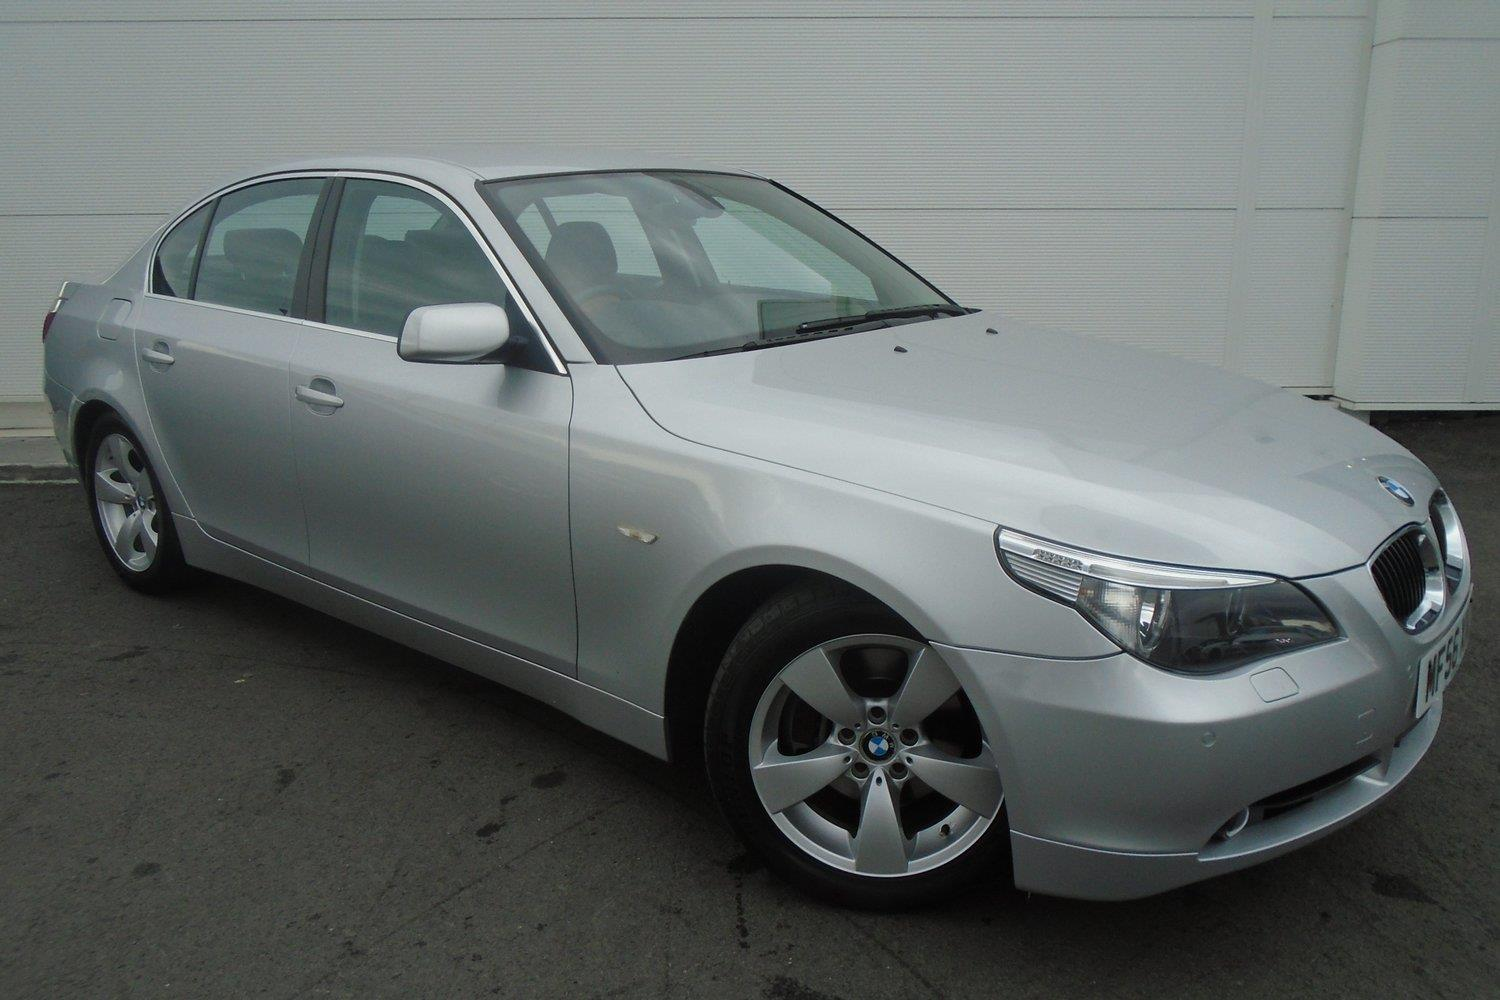 BMW 5 Series Saloon MF56XNZ - Image 6